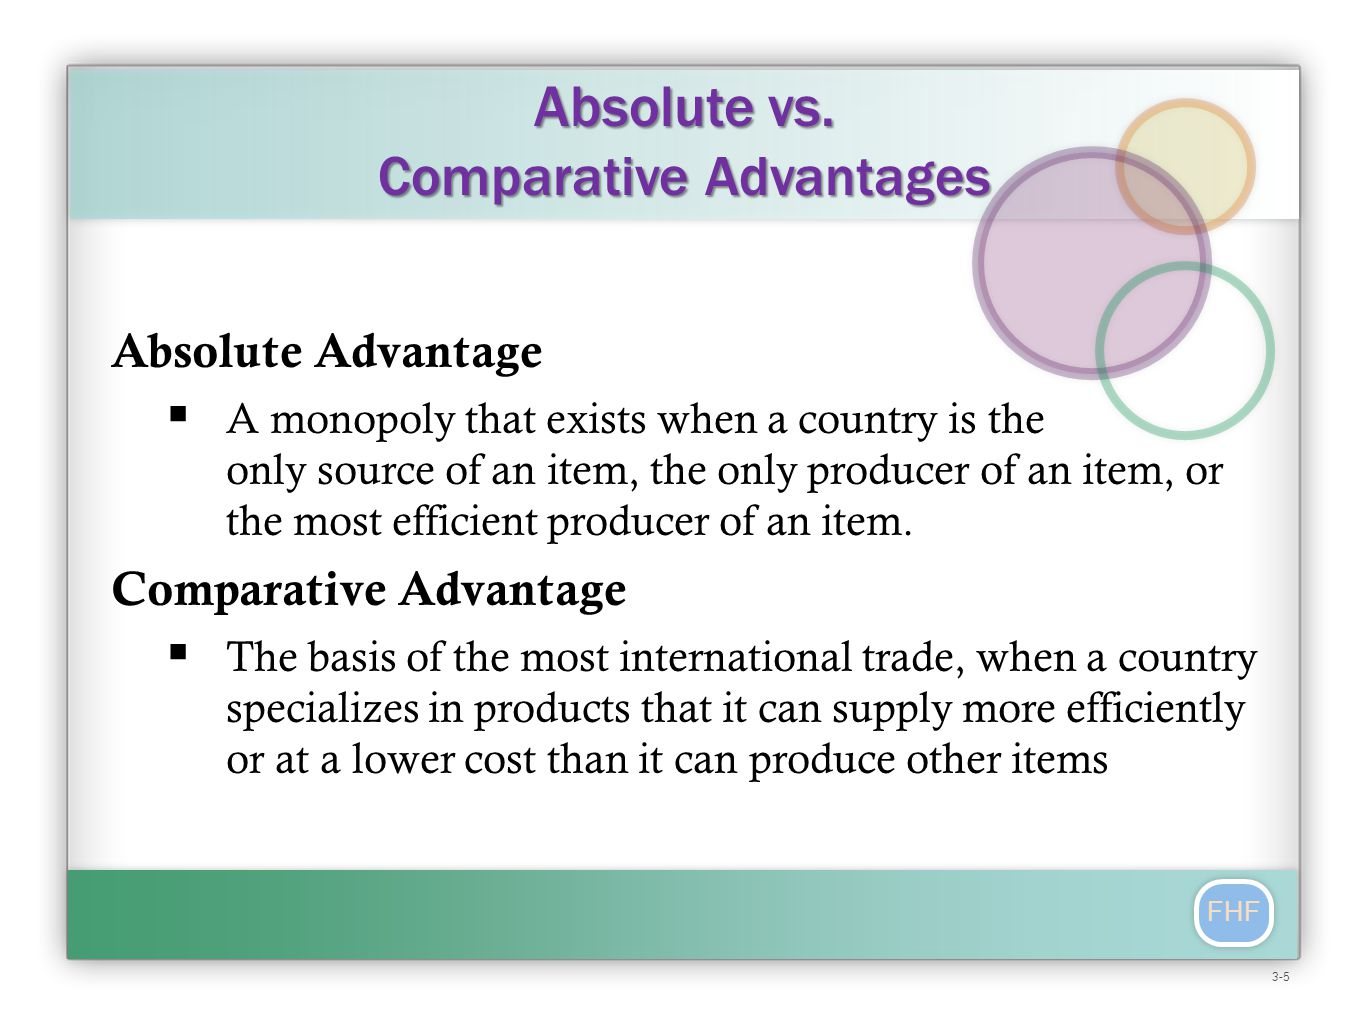 FHF Absolute Advantage  A monopoly that exists when a country is the only source of an item, the only producer of an item, or the most efficient producer of an item.